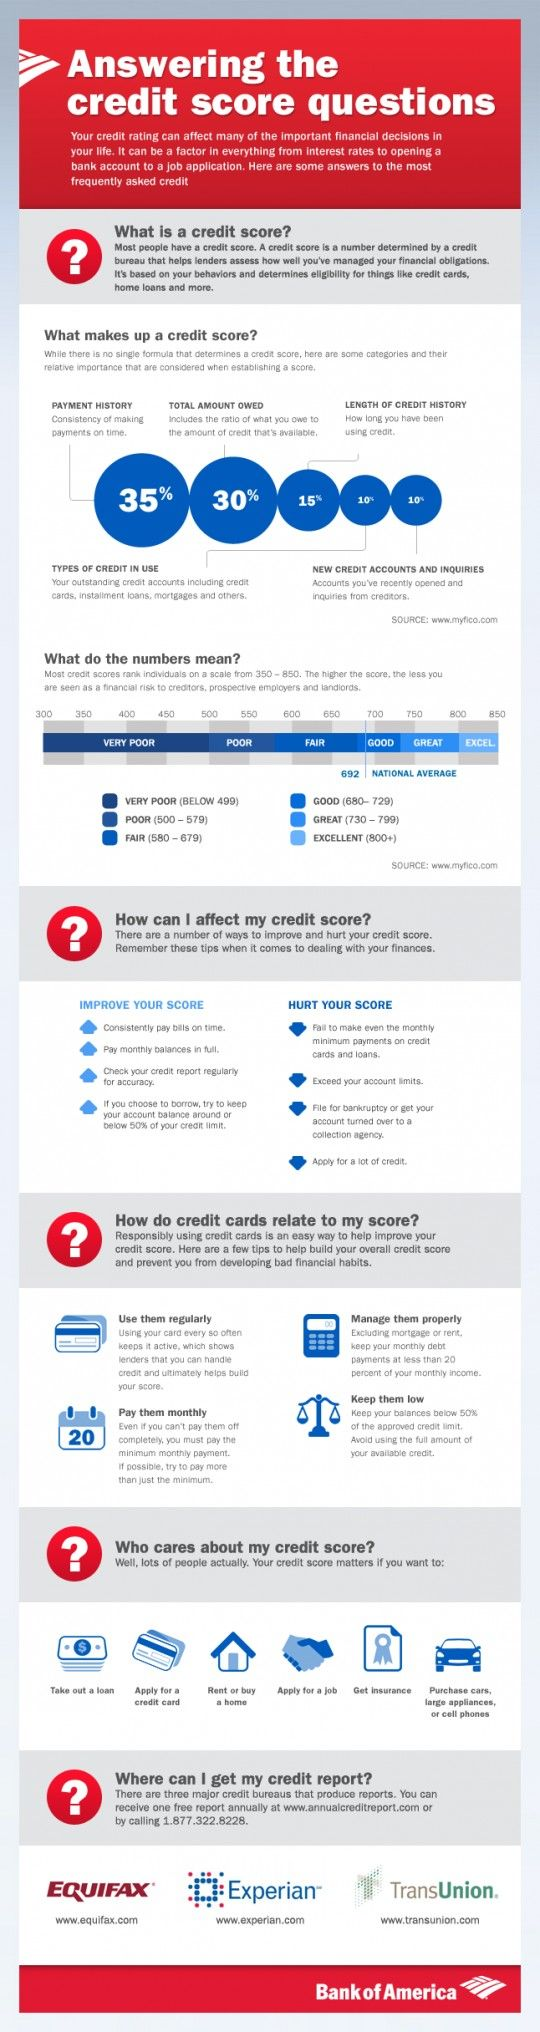 bank of america home loan payments online